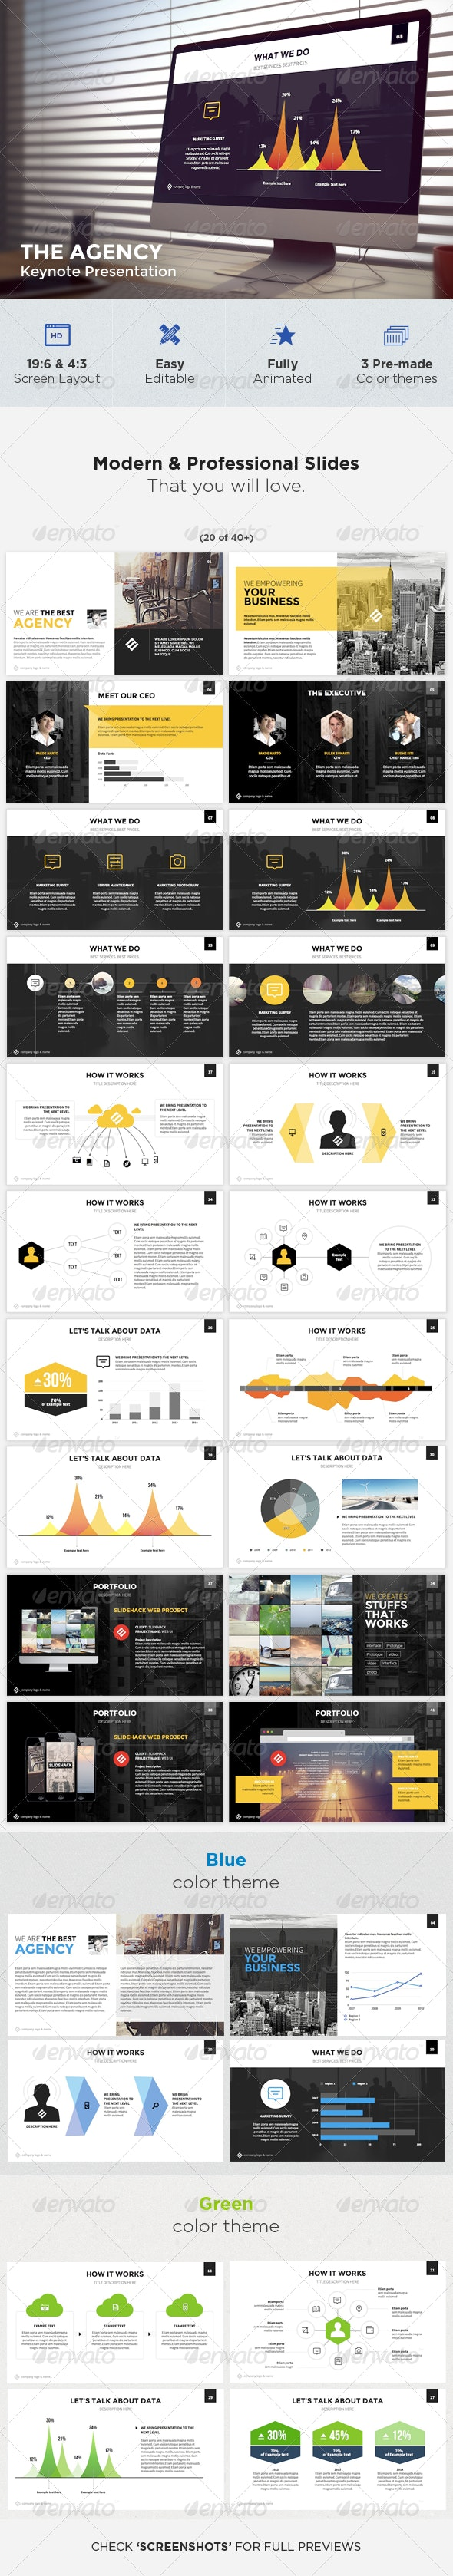 The Agency - Modern Keynote Template - Keynote Templates Presentation Templates